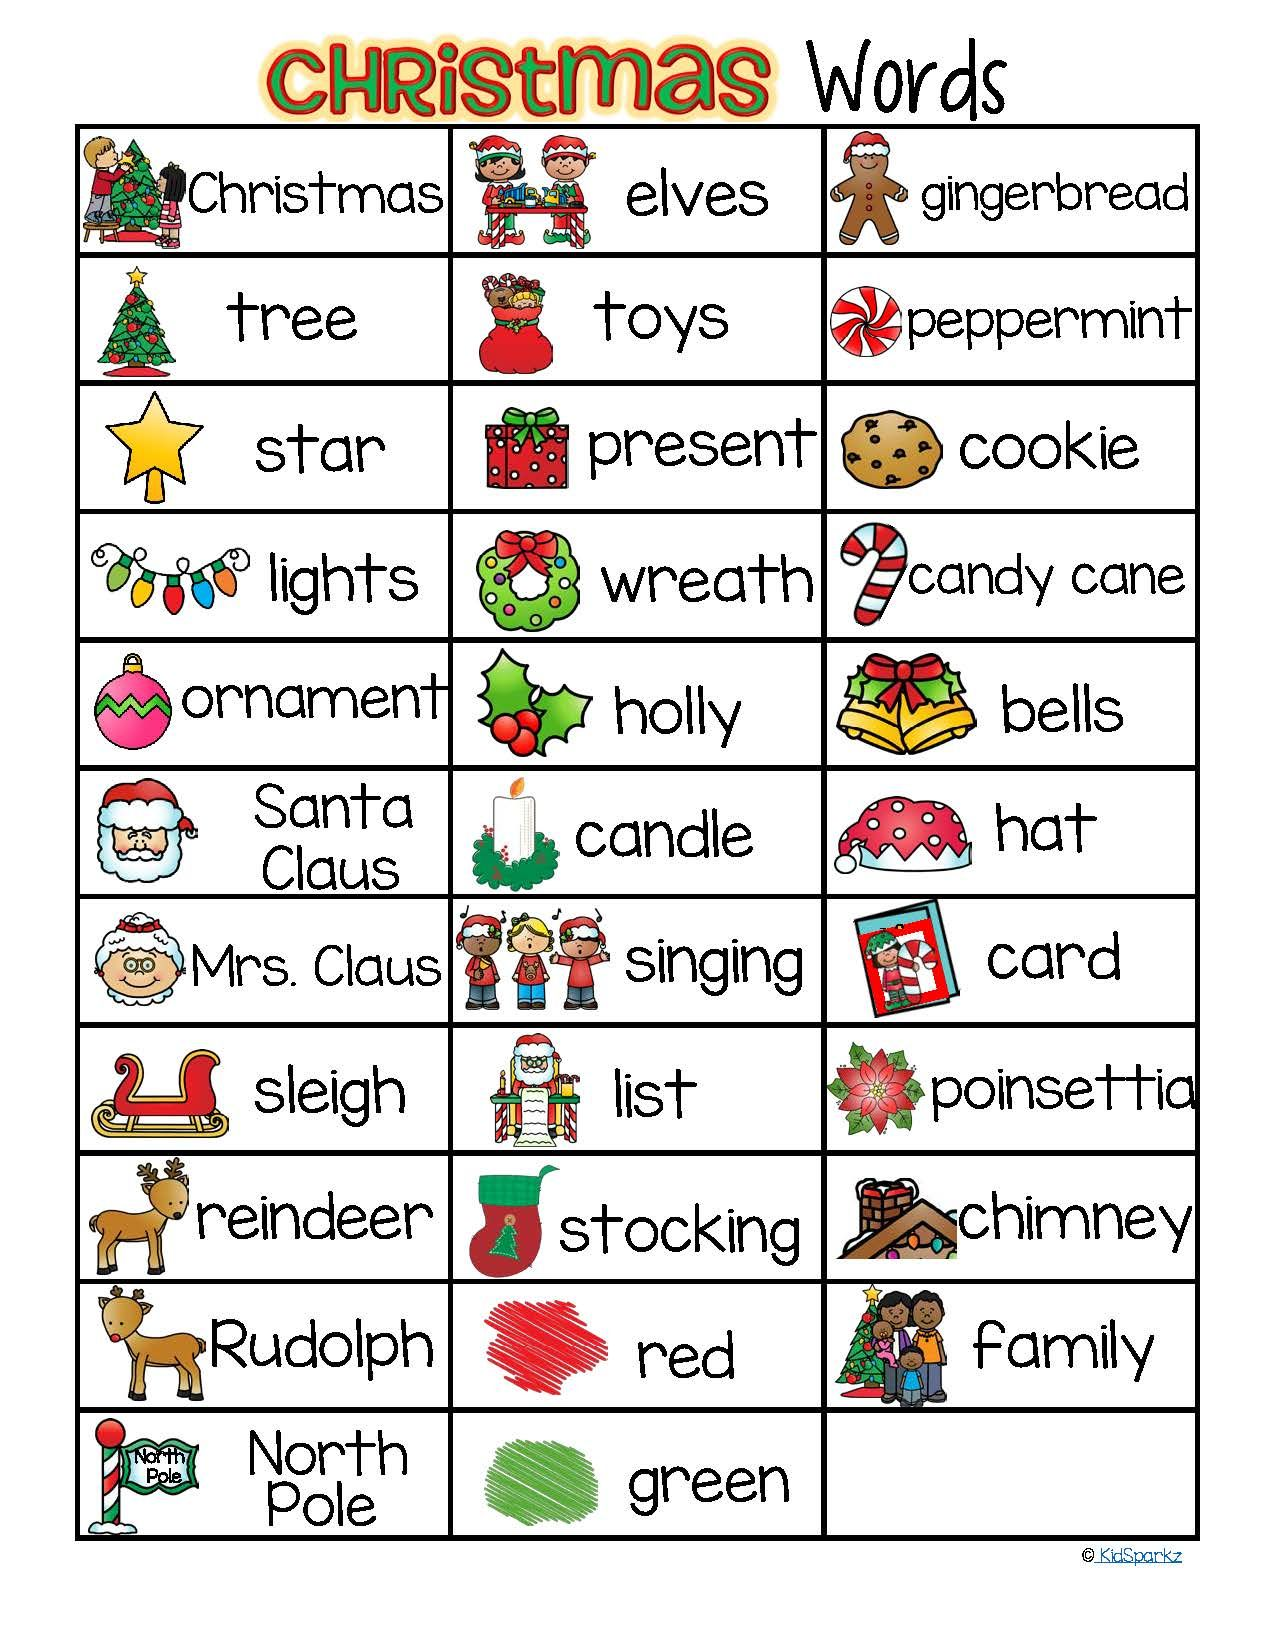 CHRISTMAS Vocabulary List 32 Words and Pictures FREE | Christmas ...